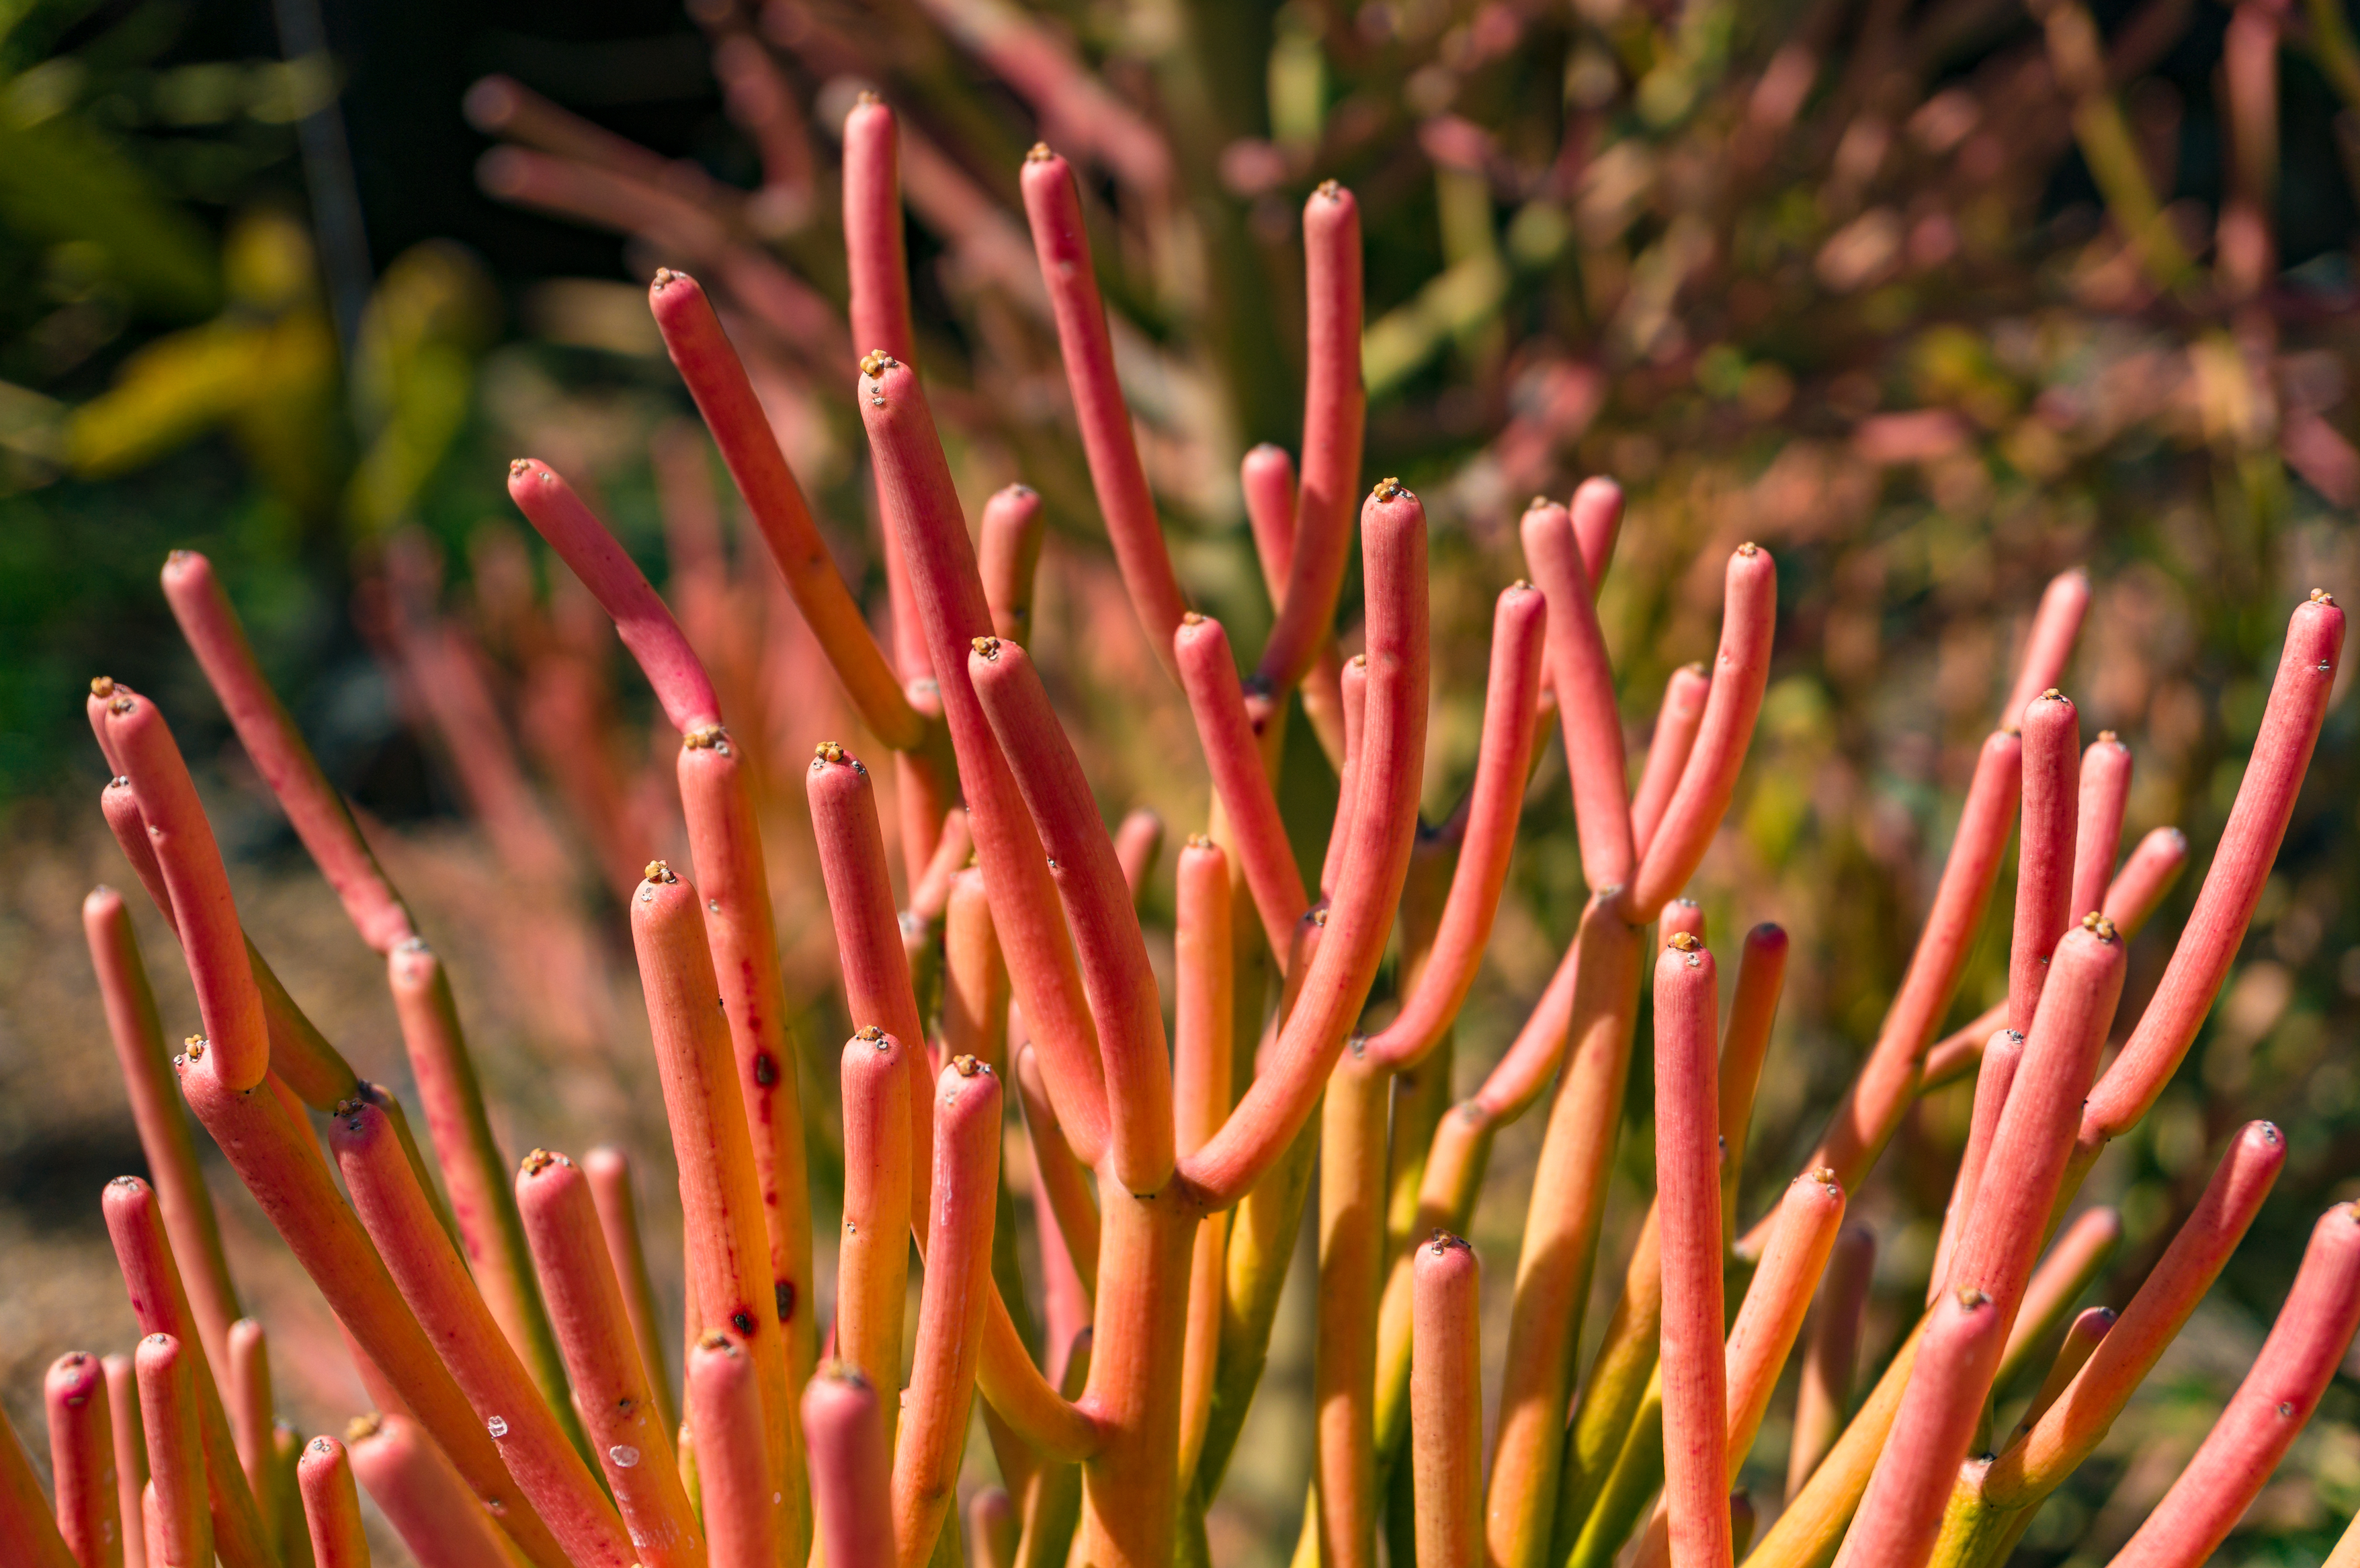 How to Grow a Stunning Euphorbis Tirucalli Pencil Cactus Anywhere